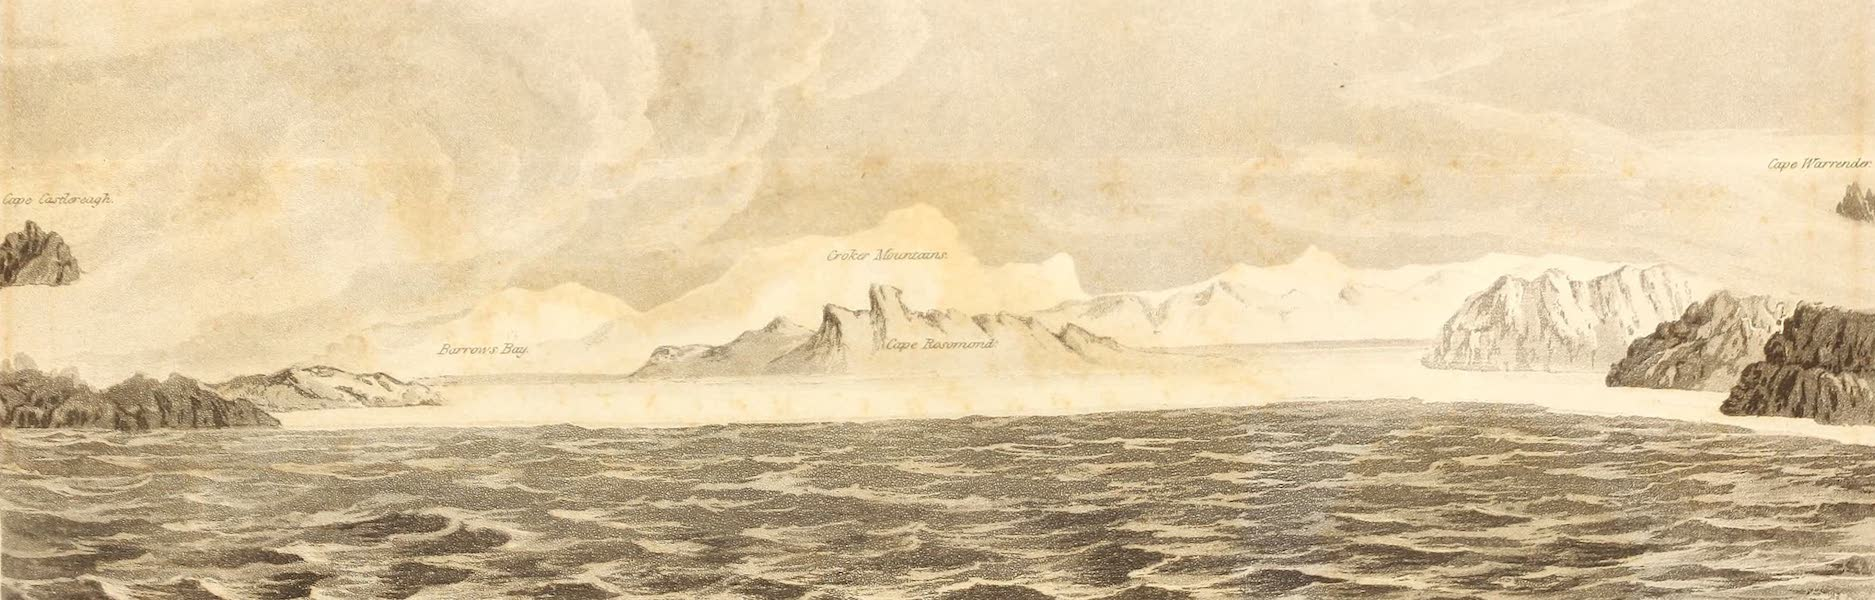 Lancaster Sound, as seen from H.M.S. Isabella